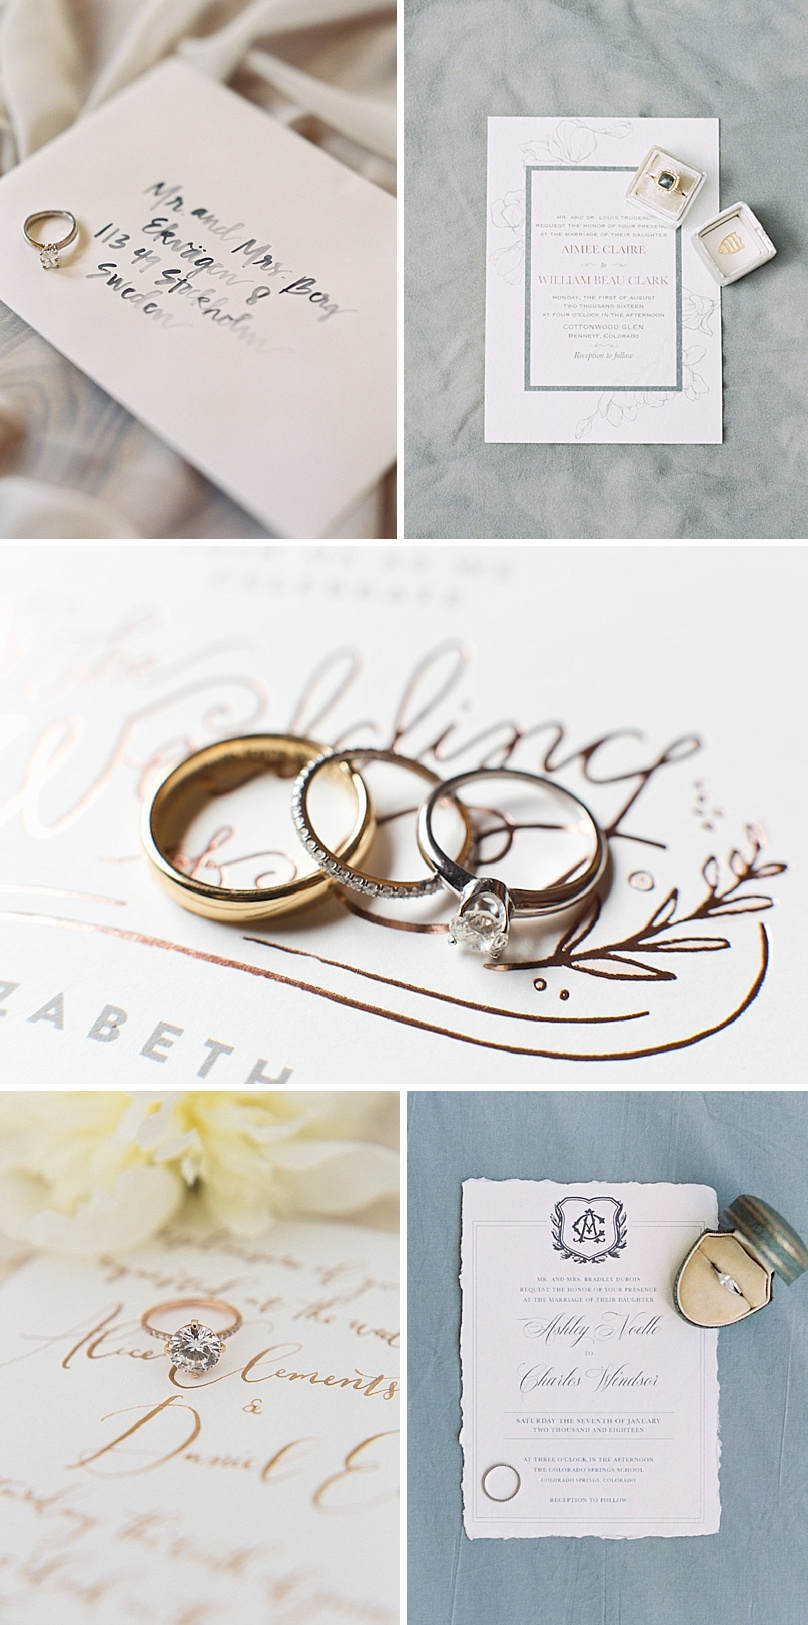 How to style your ring with your wedding invitations by The Styled Soiree, photos by:  Top Row  Carrie King Photography ,  Rachel Gomez Photography  Middle:  Jackie Cooper Photography  Bottom Row:  Michele with one L ,  Sara Lynn Photo